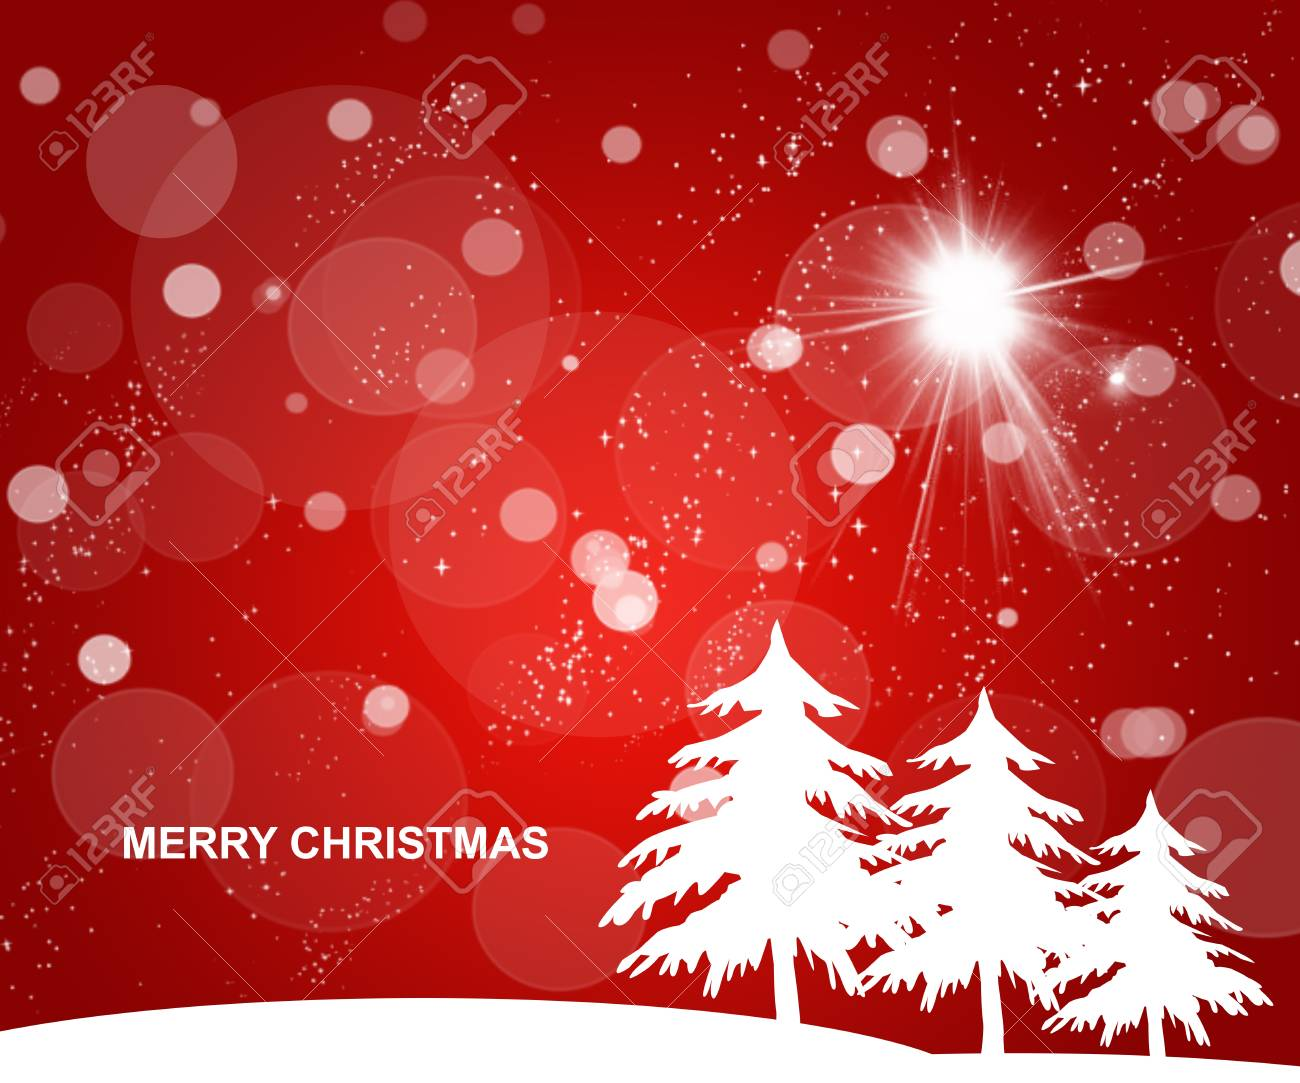 Red Christmas background Stock Photo - 16925728